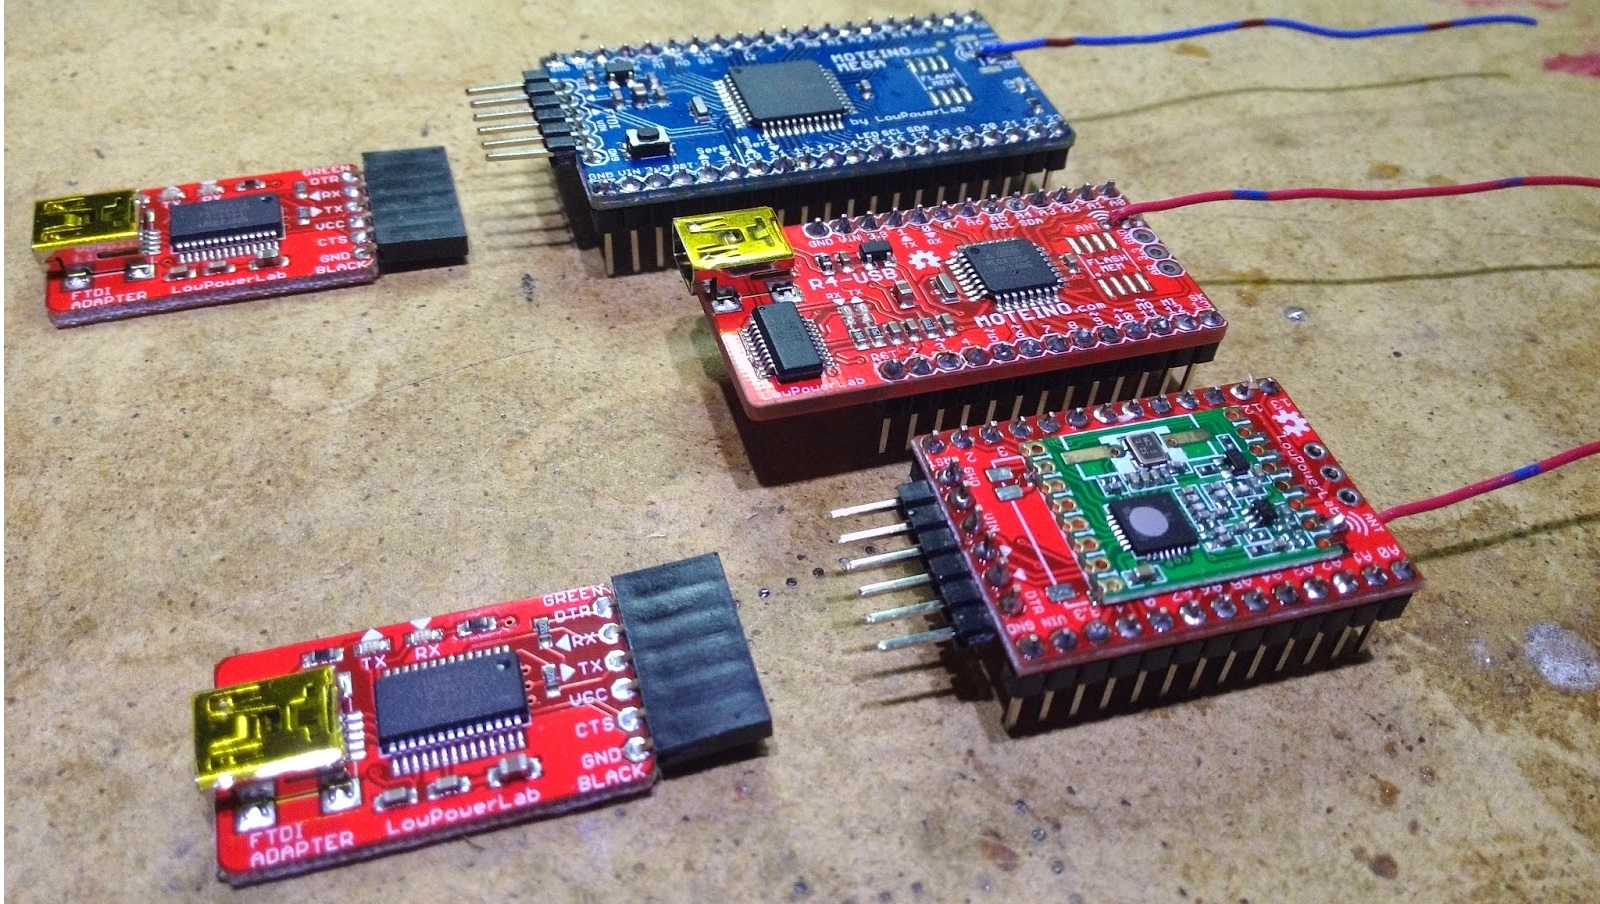 A new entry, Moteino boards are now supported in Souliss